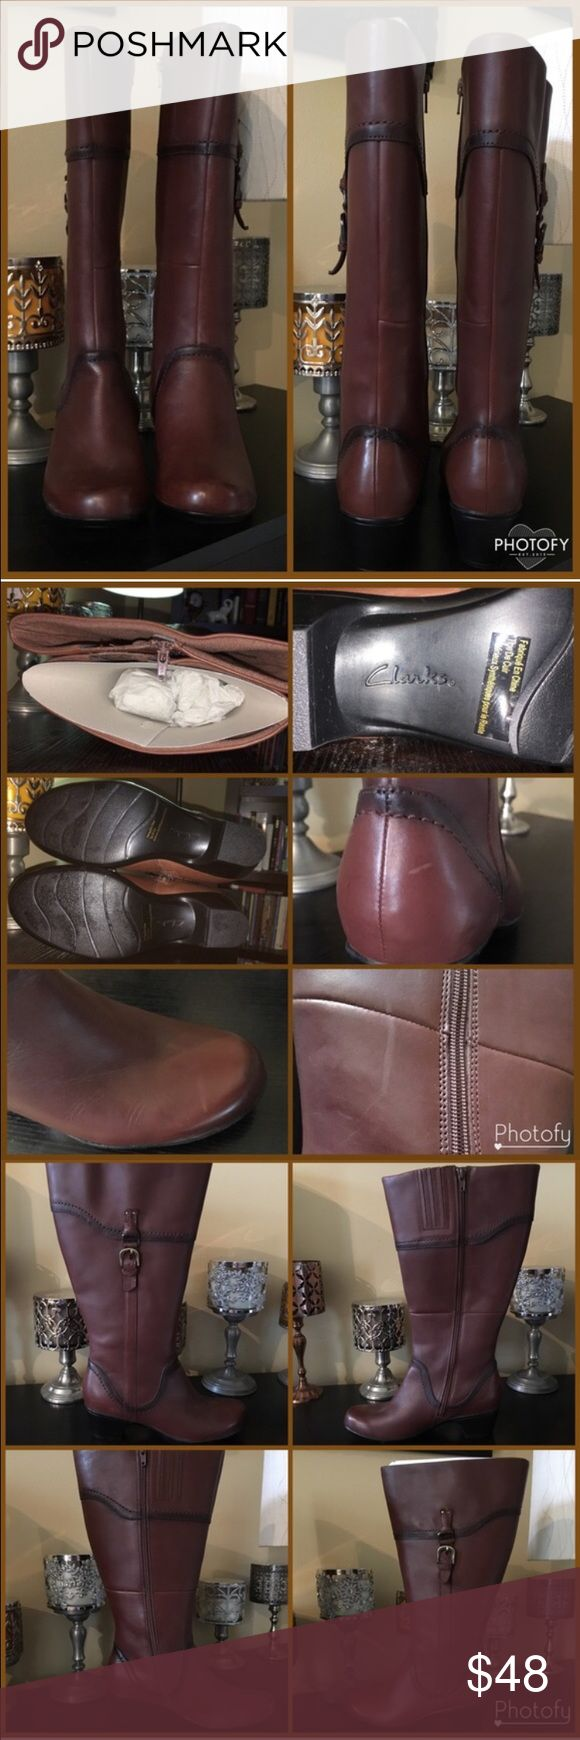 NWOT Clarks Gorgeous Leather Riding Boots NWOT Clarks Leather Riding Boots. Gorgeous all leather upper with decorative side buckles. Some distressing - see photos. Low heel. Super comfy when tried on. Wider calf opening - great for those who need it or for leg warmers/boot socks.   Ask questions & make reasonable offers. Thank You! 😊 No trades.   Nonsmoking, pet friendly (Morkie) home. Clarks Shoes Heeled Boots